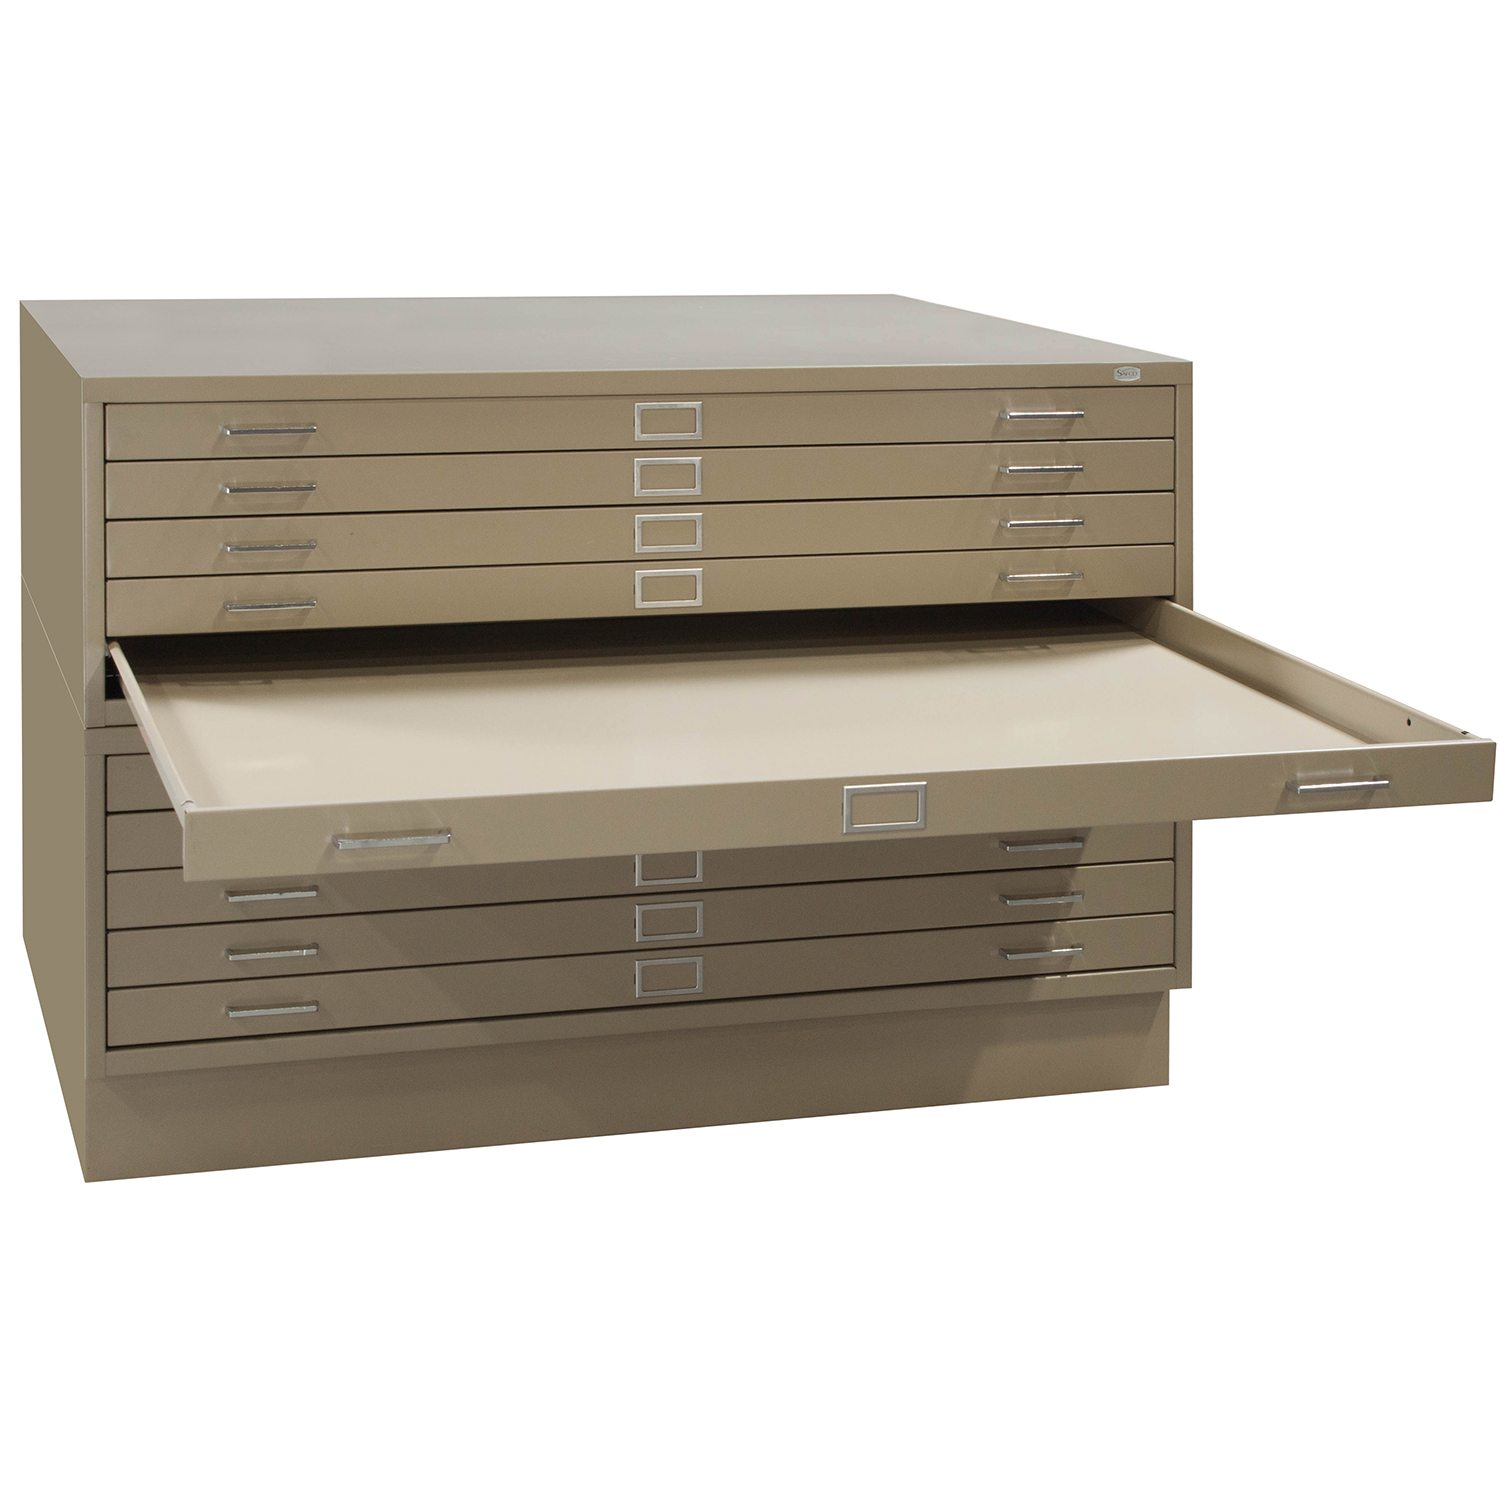 Safco 10 Drawer Flat File In Putty   Drawer